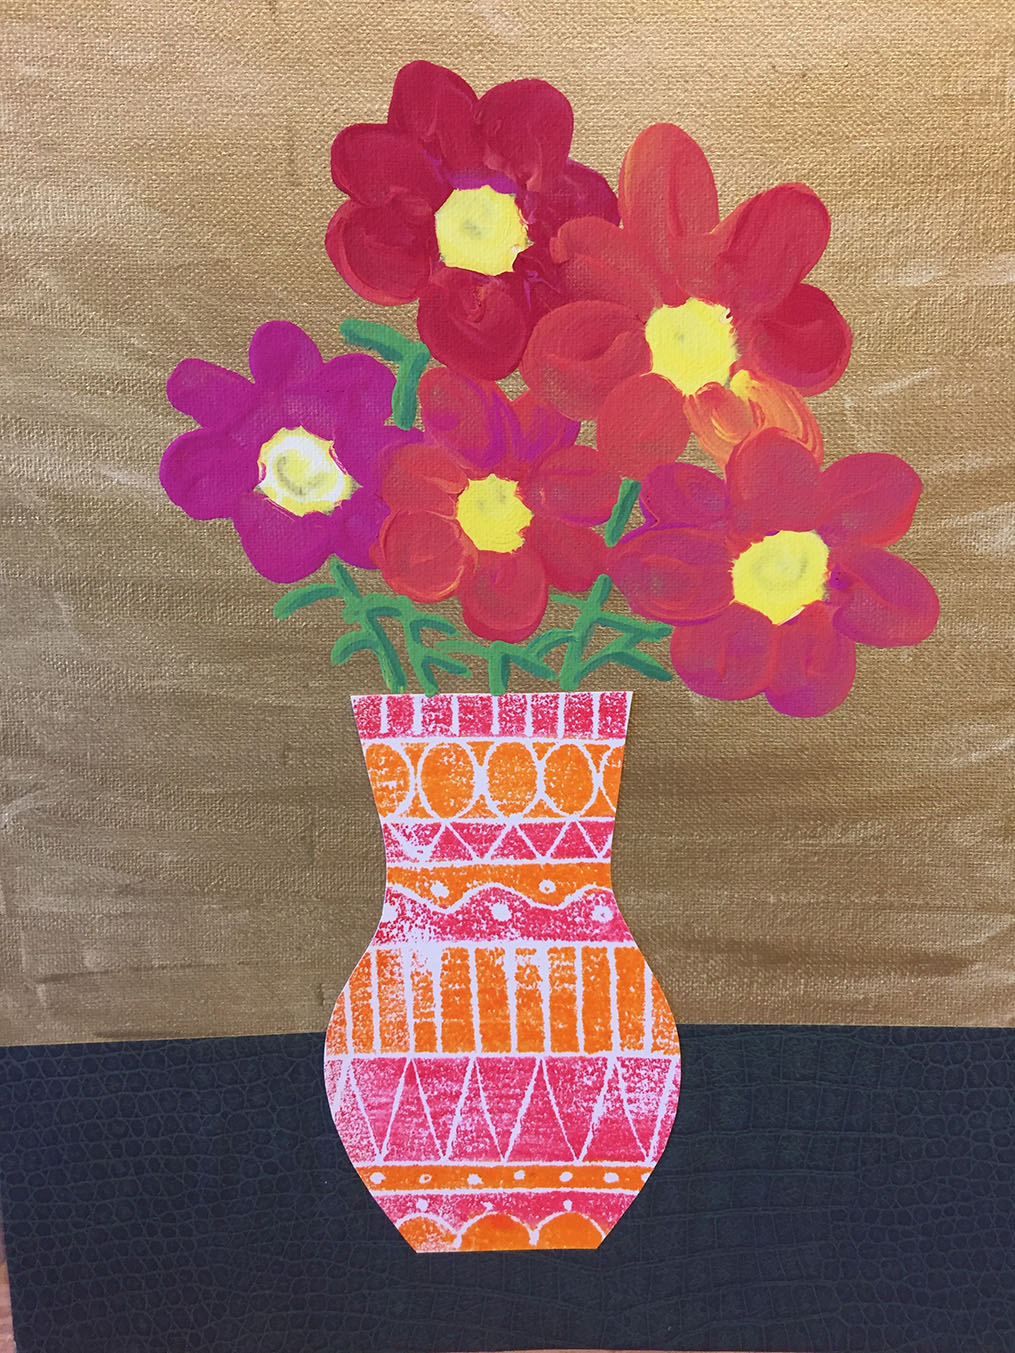 printed vase, blooms on gold.jpg